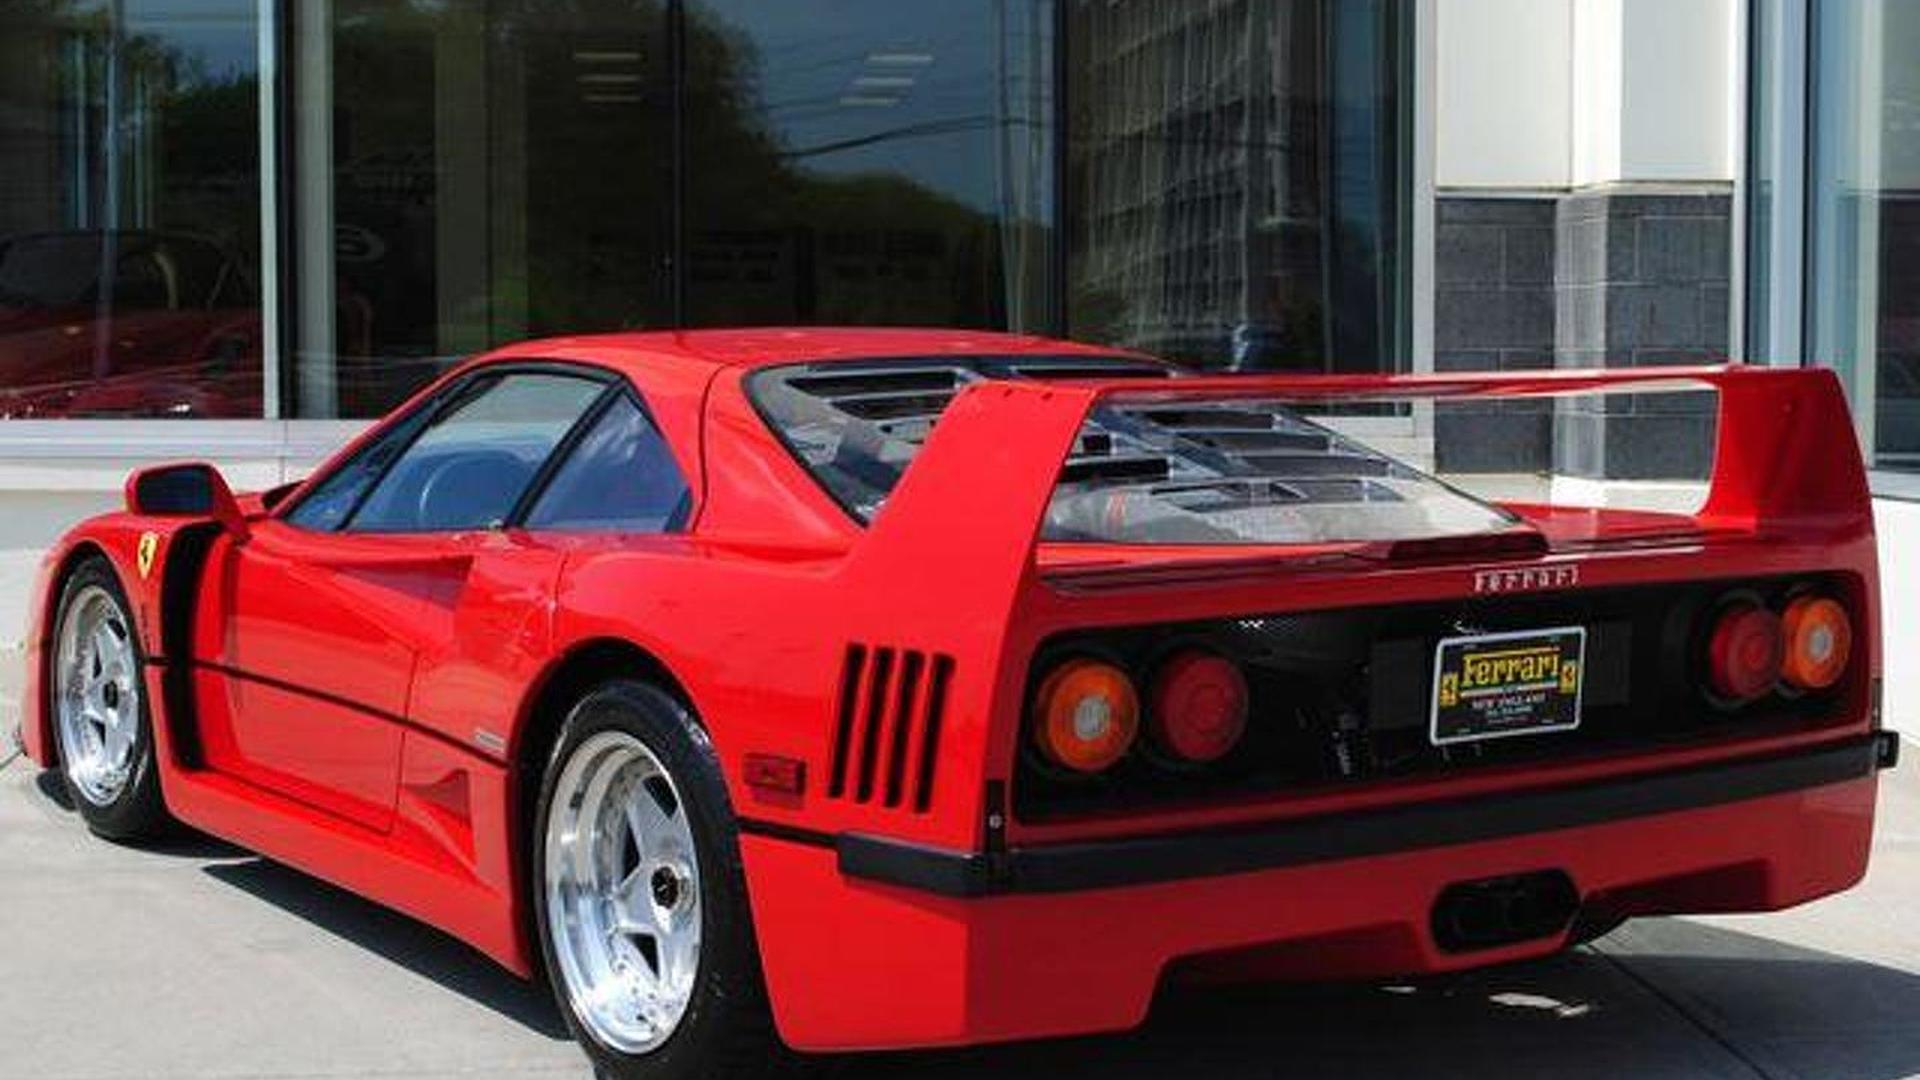 1990 ferrari f40 1995 f50 and 2003 enzo available on sale for 62 1990 ferrari f40 1995 f50 and 2003 enzo available on sale for 62m usd not sold separately product 2013 06 06 155349 vanachro Choice Image